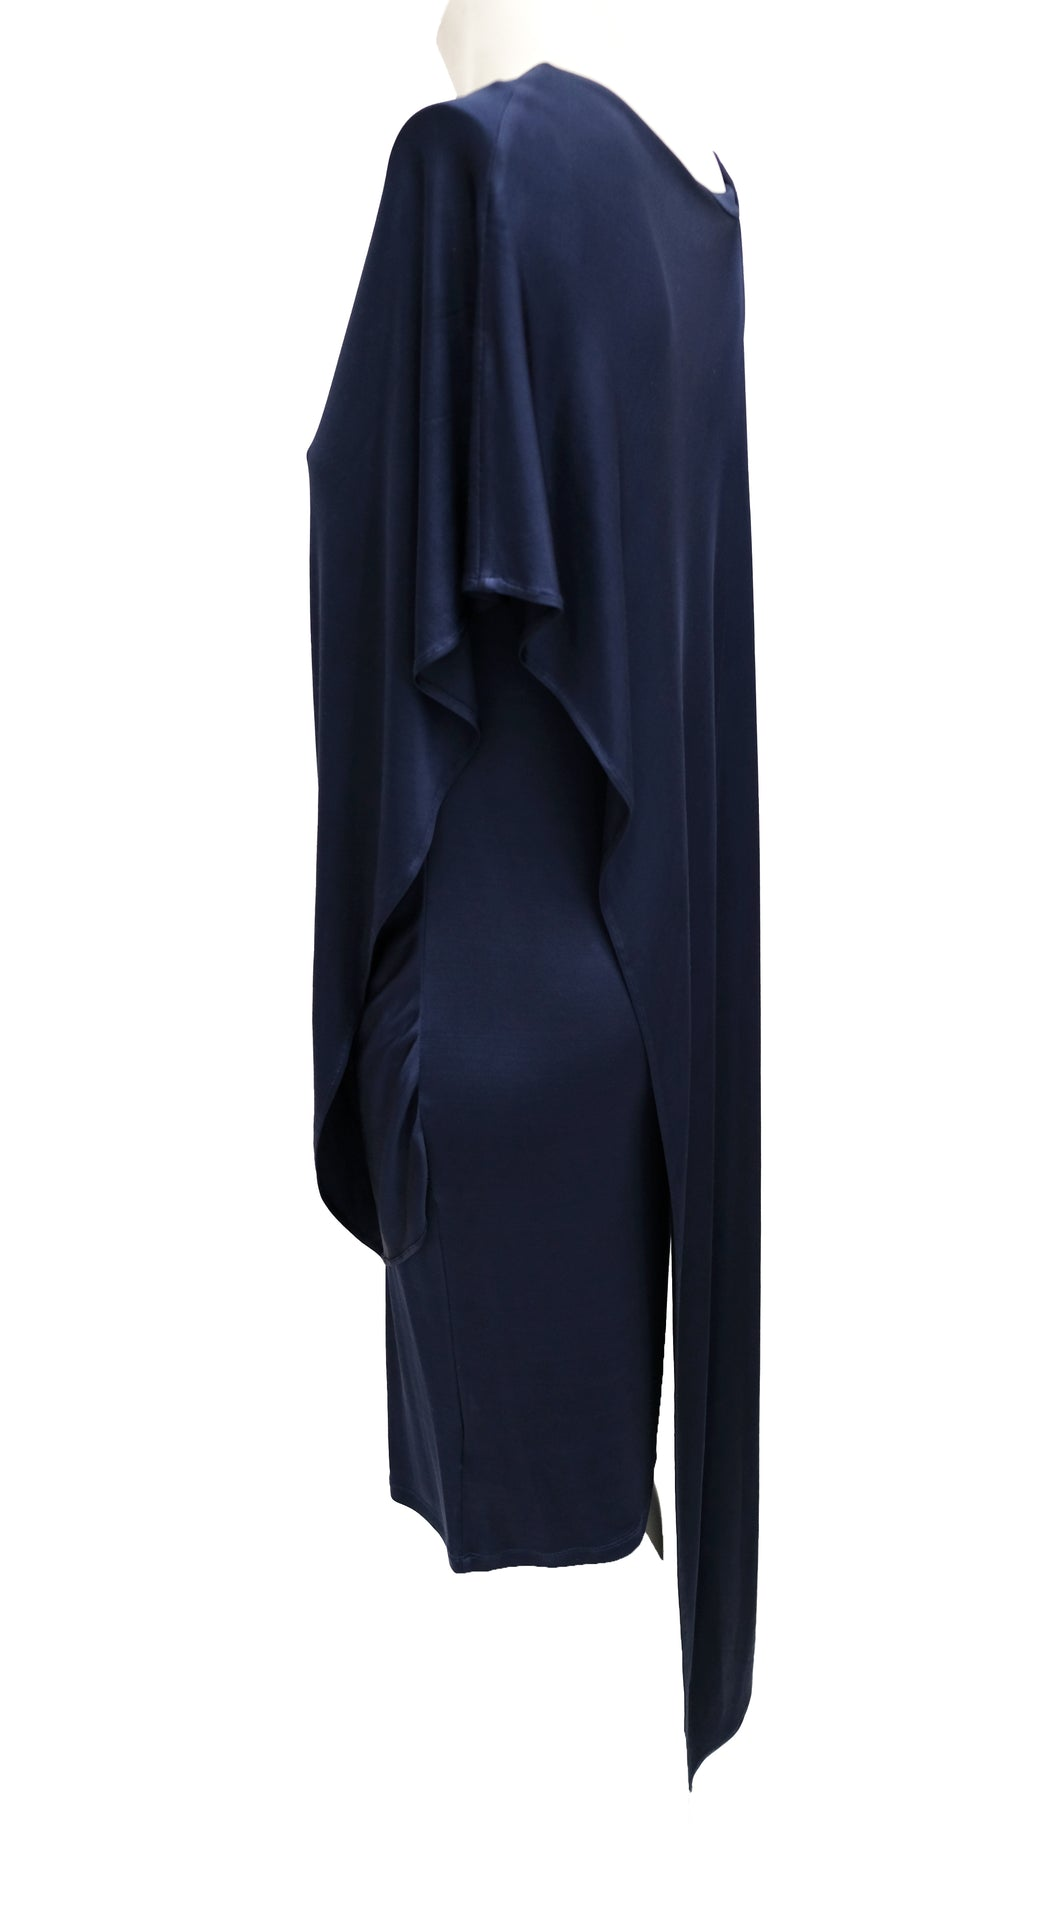 Alexander McQueen Navy Asymmetric Dress, UK12